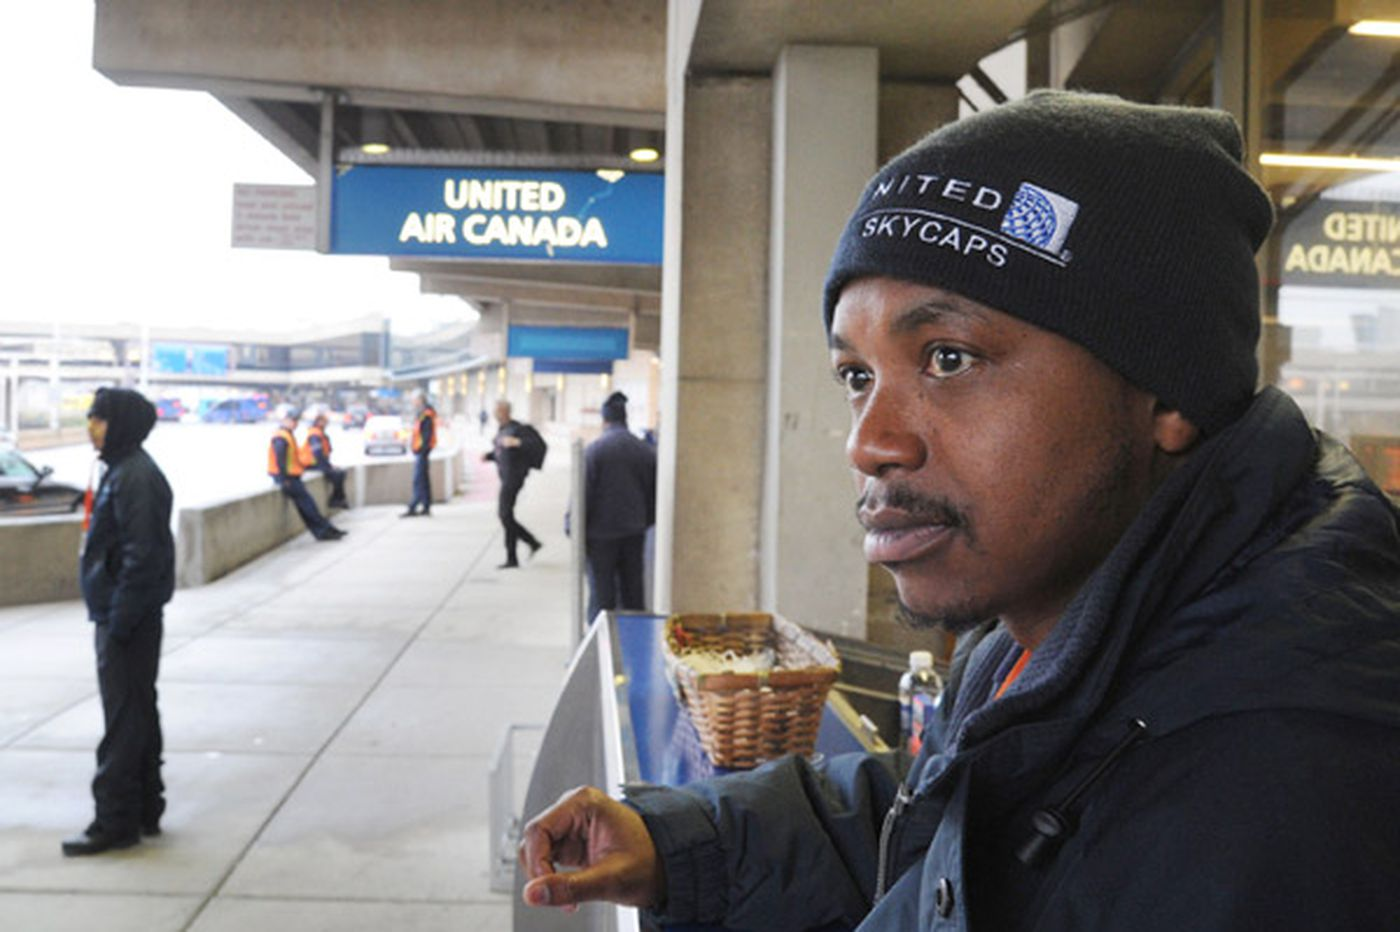 Advocates urge extending Philadelphia's 'living-wage' standard to non-unionized airport workers